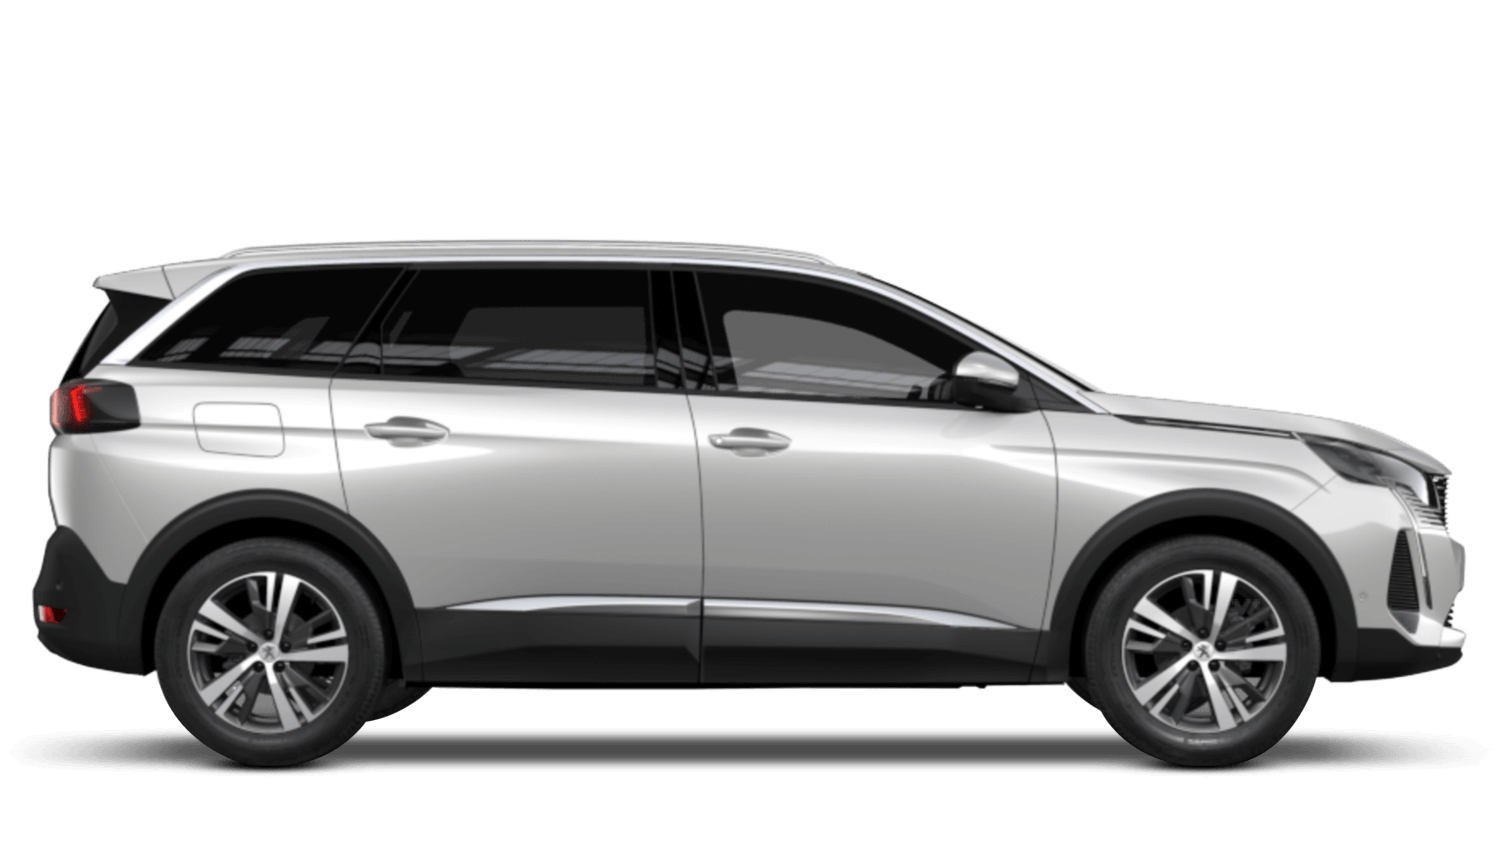 Pearlescent White New Peugeot 5008